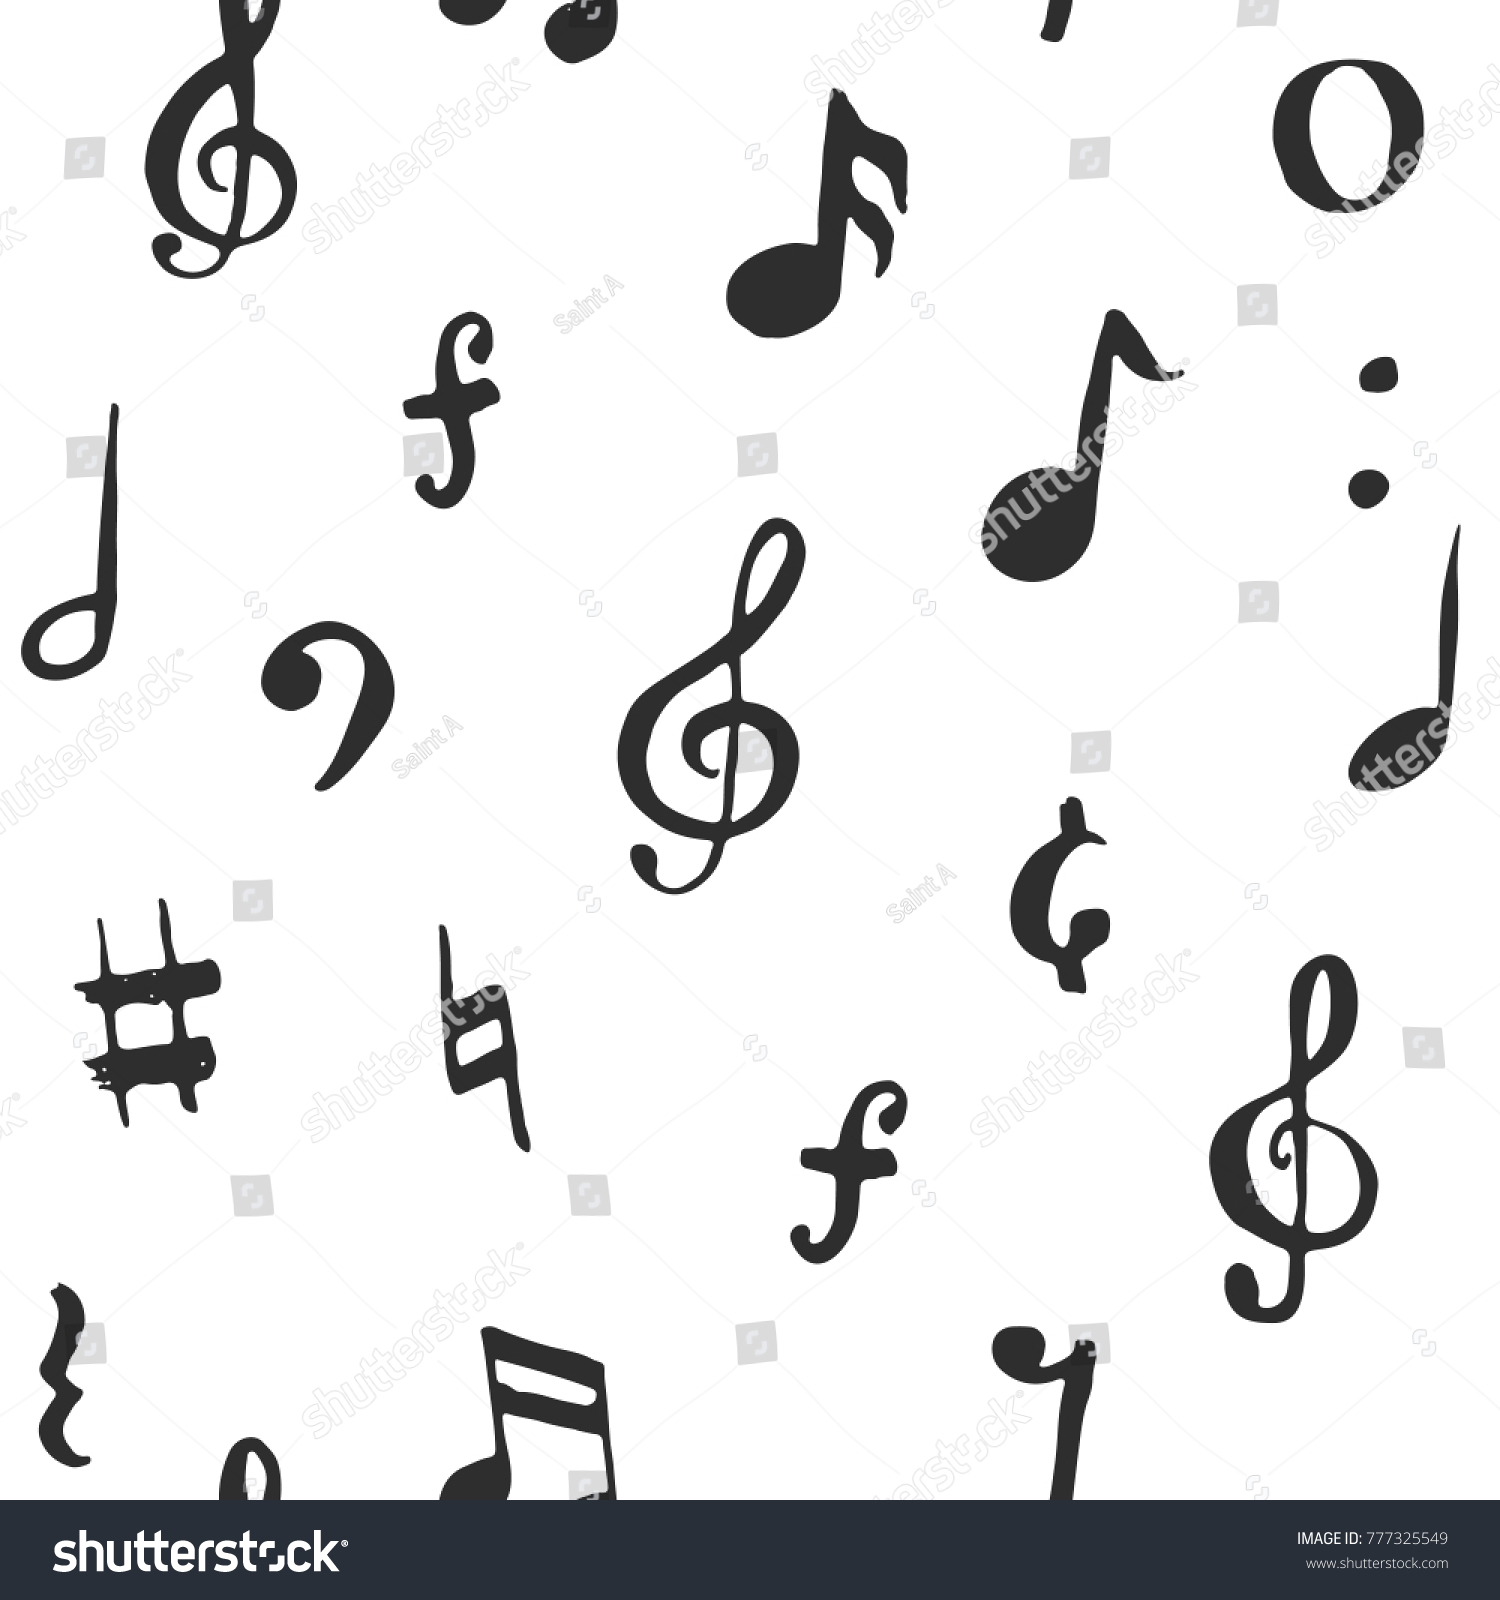 Music note seamless pattern vector illustration stock vector music note seamless pattern vector illustration hand drawn sketched doodle music notes symbols biocorpaavc